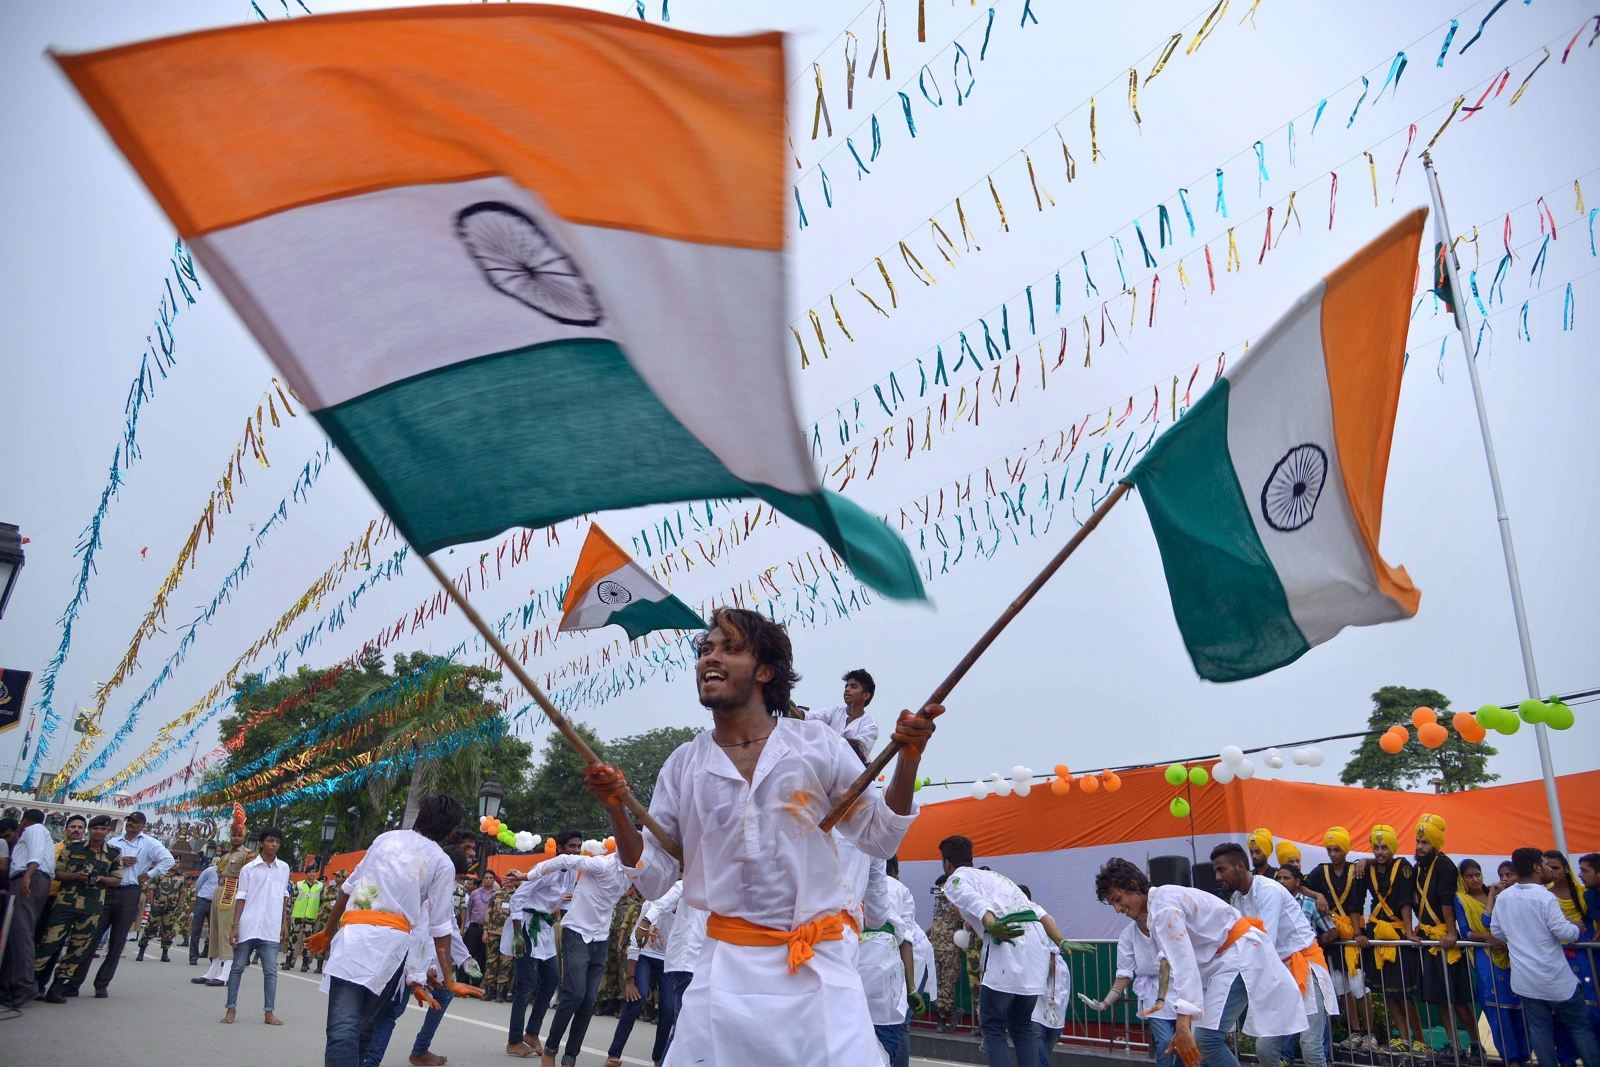 India Independence Day 2016: History and significance of 15 August